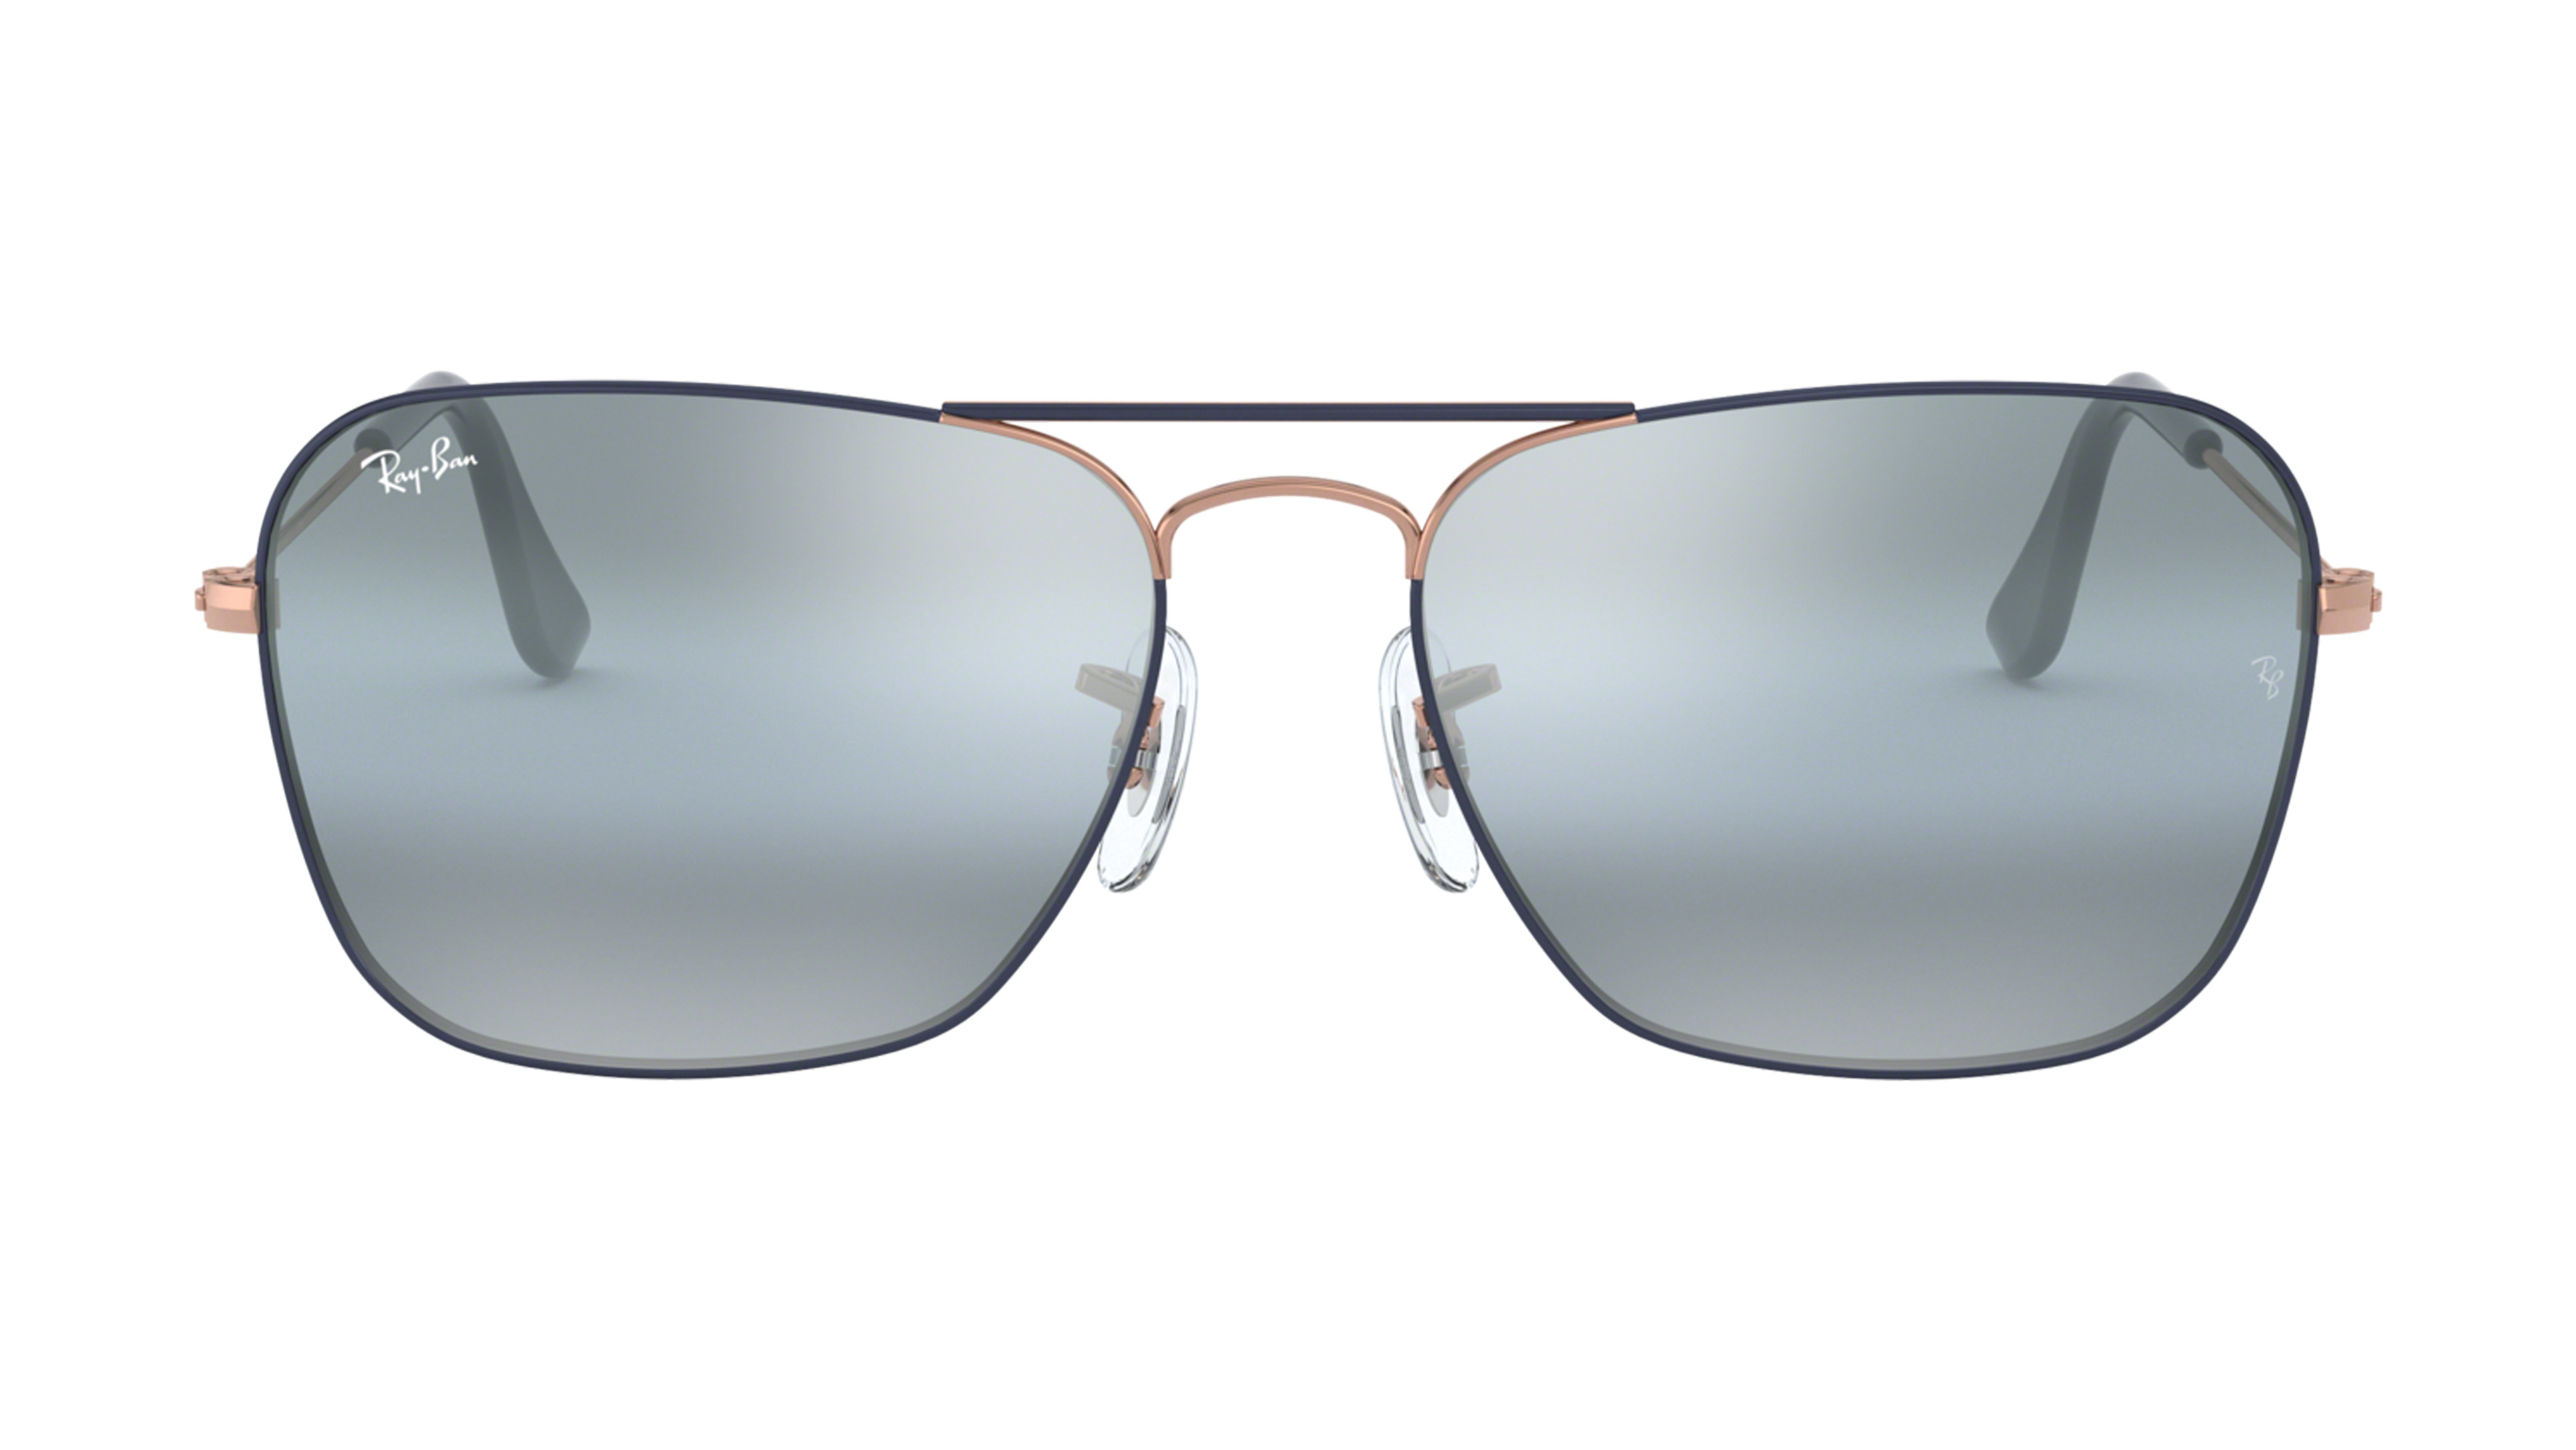 8056597044264-front-Ray-Ban-0RB3136-9156AJ